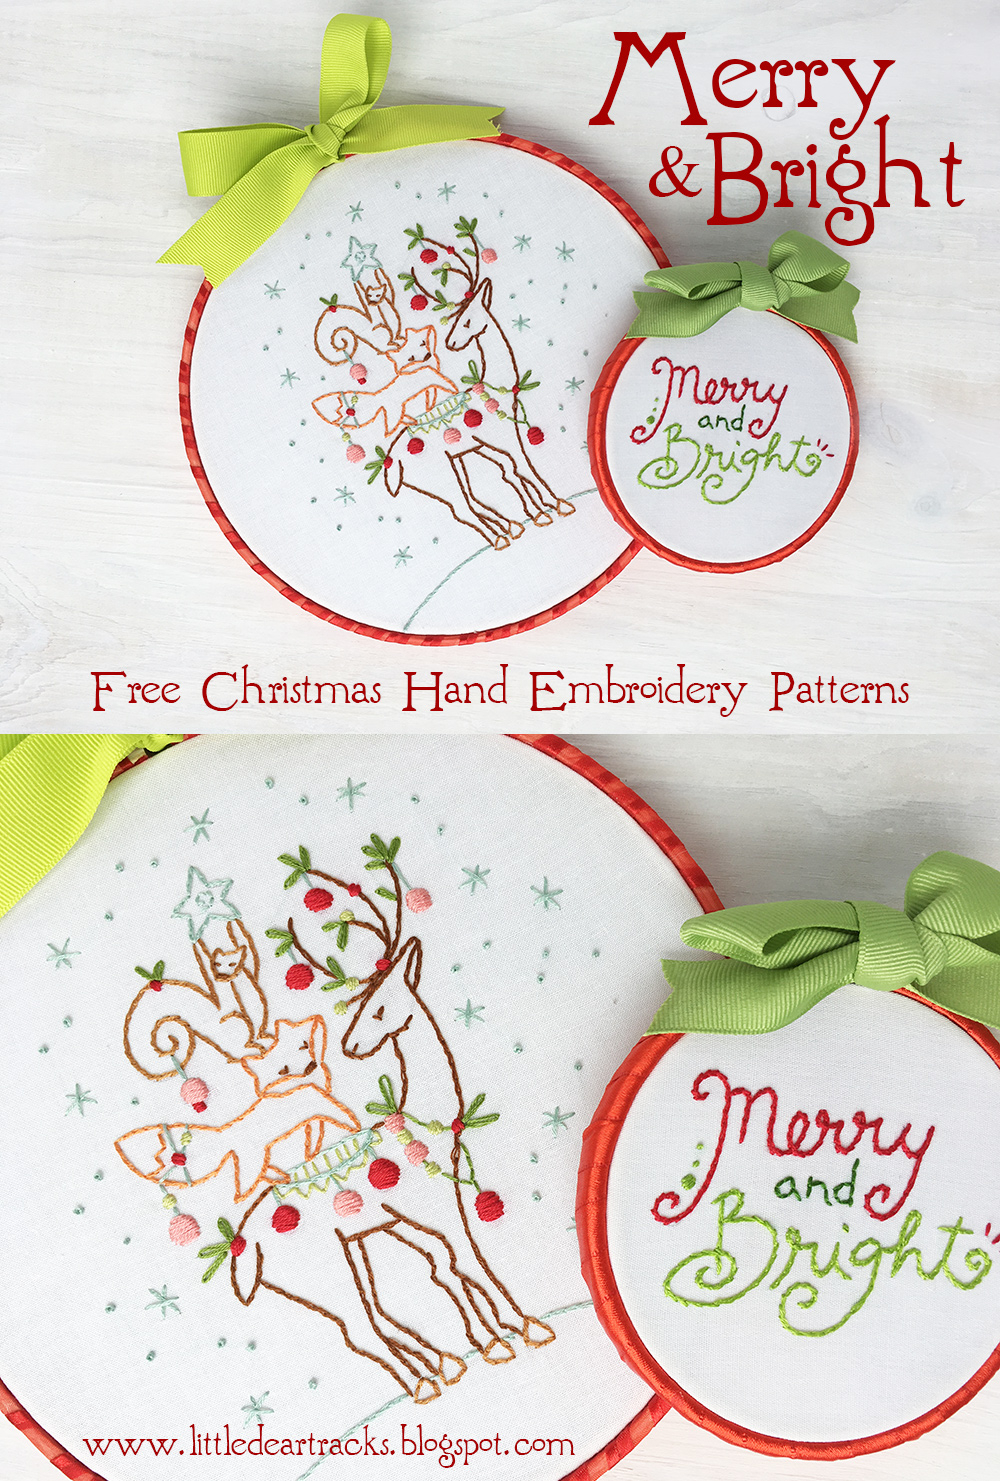 Christmas Embroidery Patterns Little Dear Tracks Free Christmas Embroidery Patterns